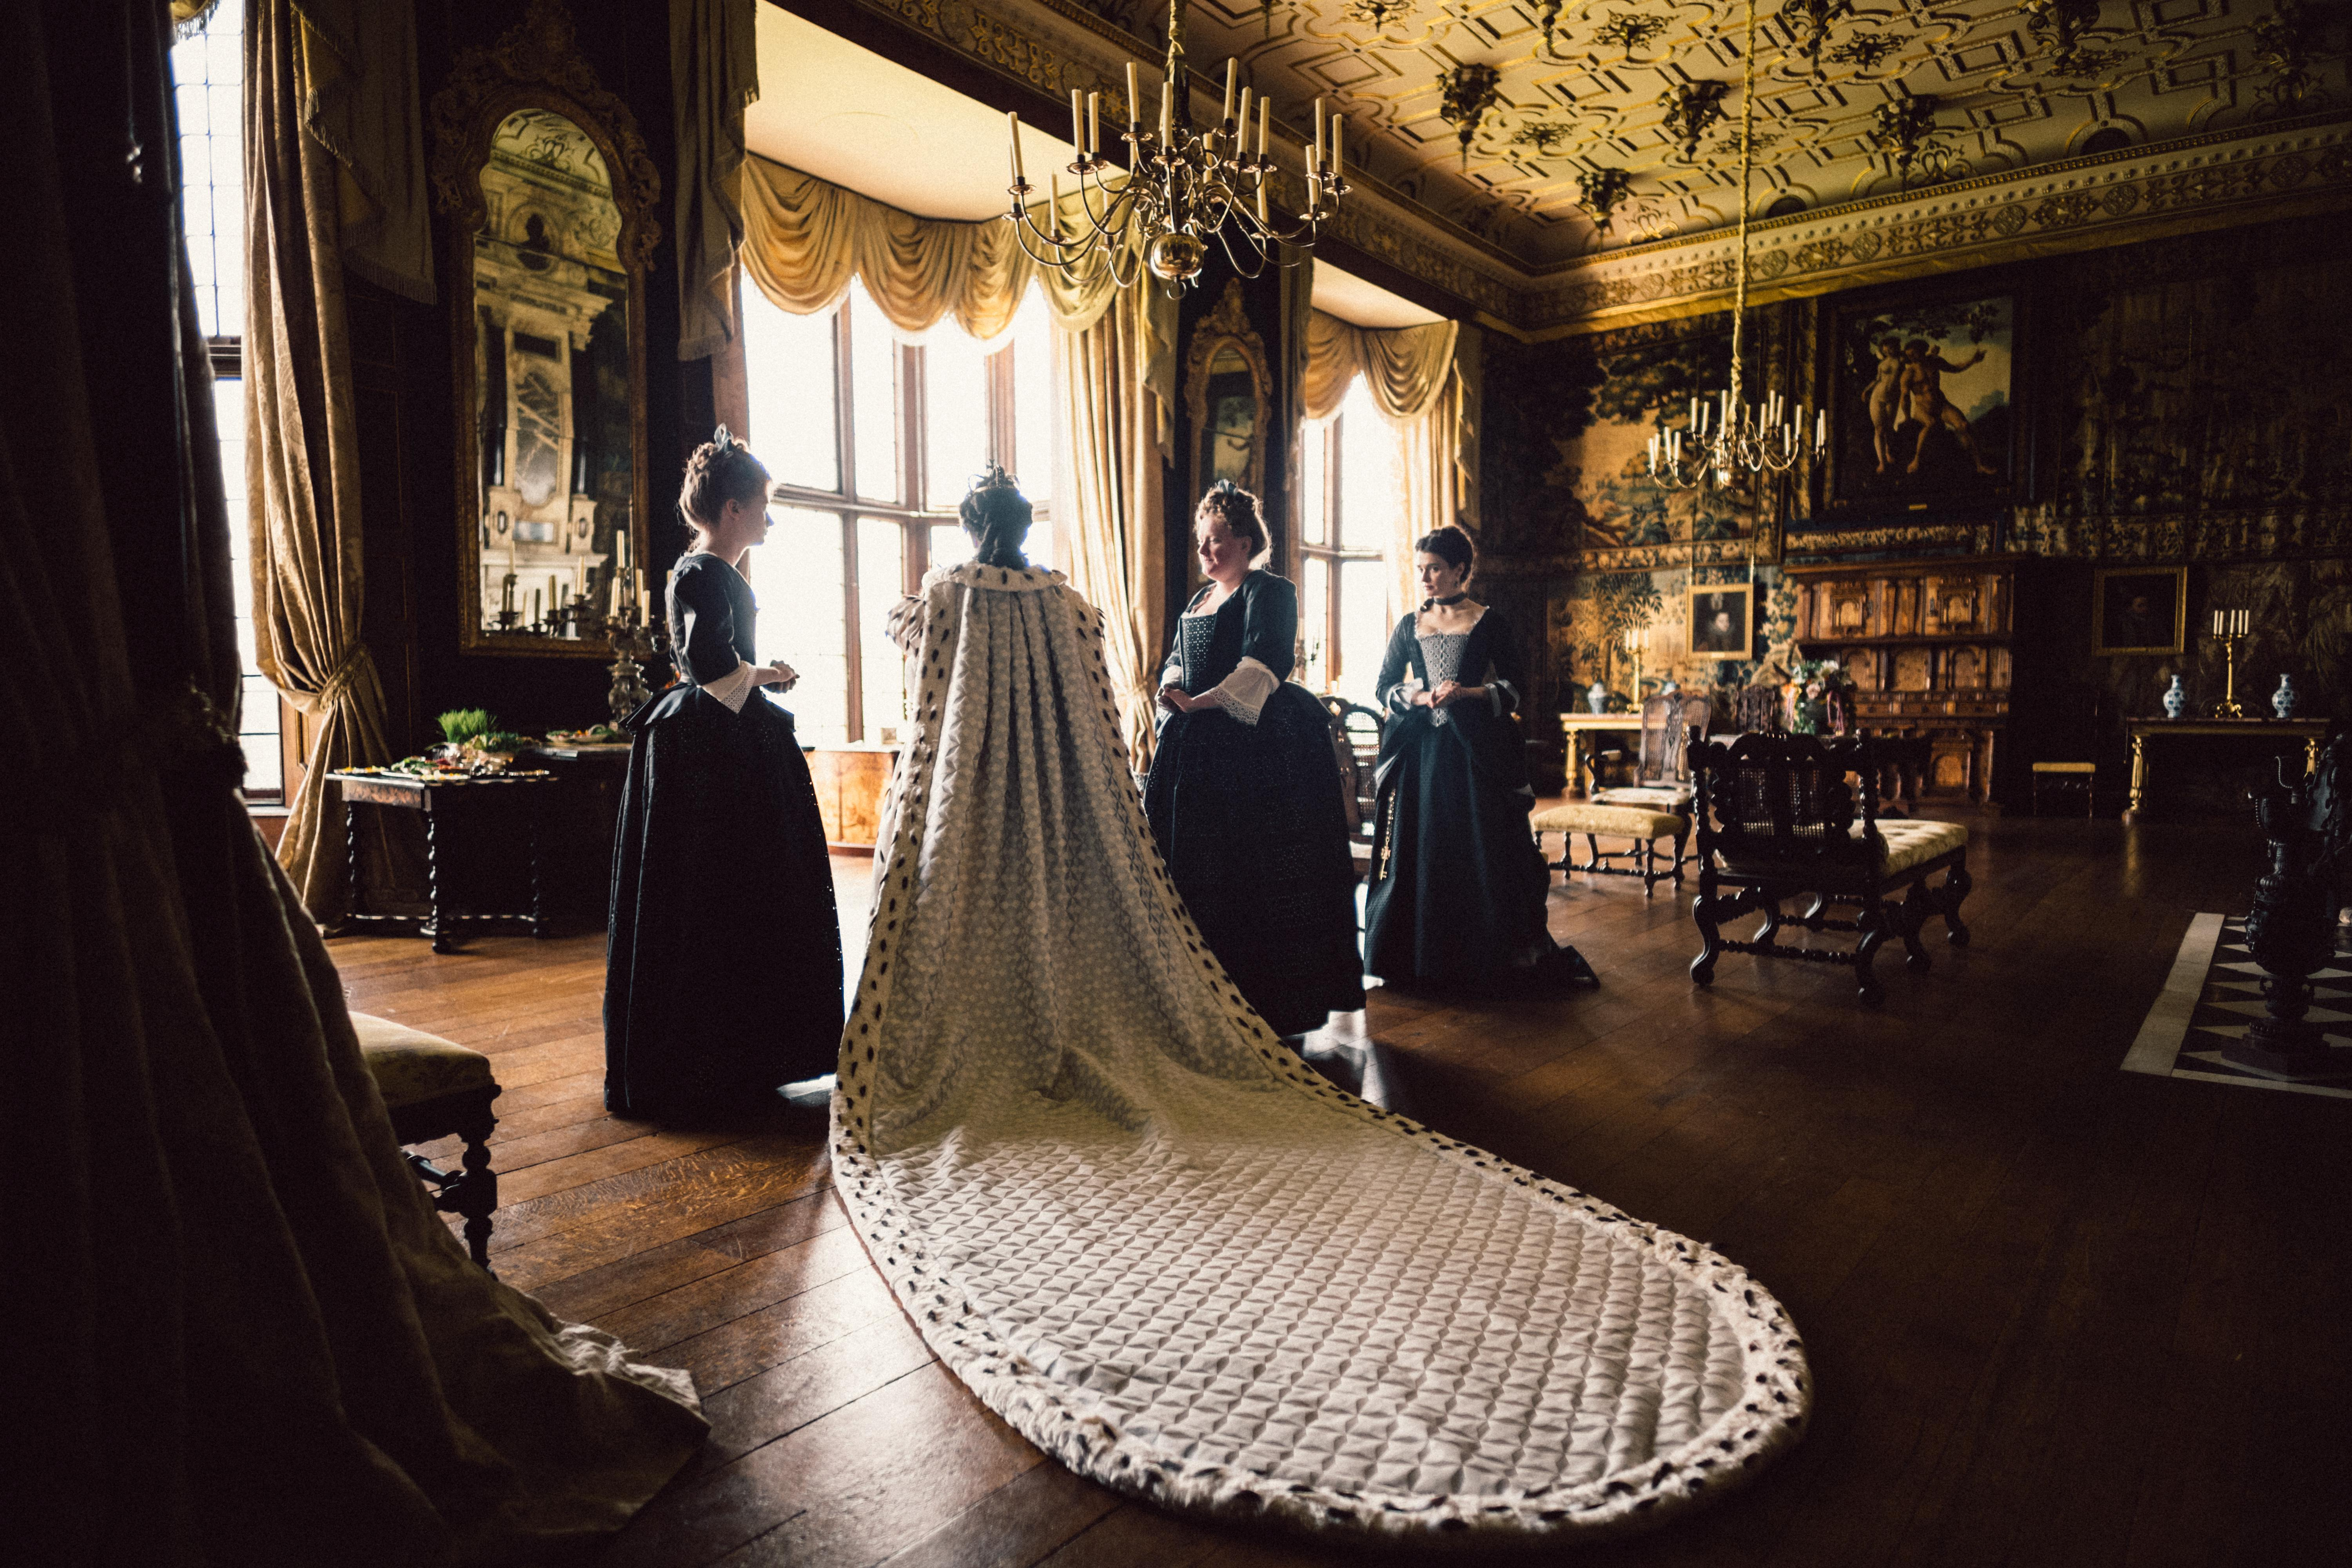 Olivia Colman and Rachel Weisz in the film THE FAVOURITE. Photo by Yorgos Lanthimos.{ }© 2018 Twentieth Century Fox Film Corporation All Rights Reserved